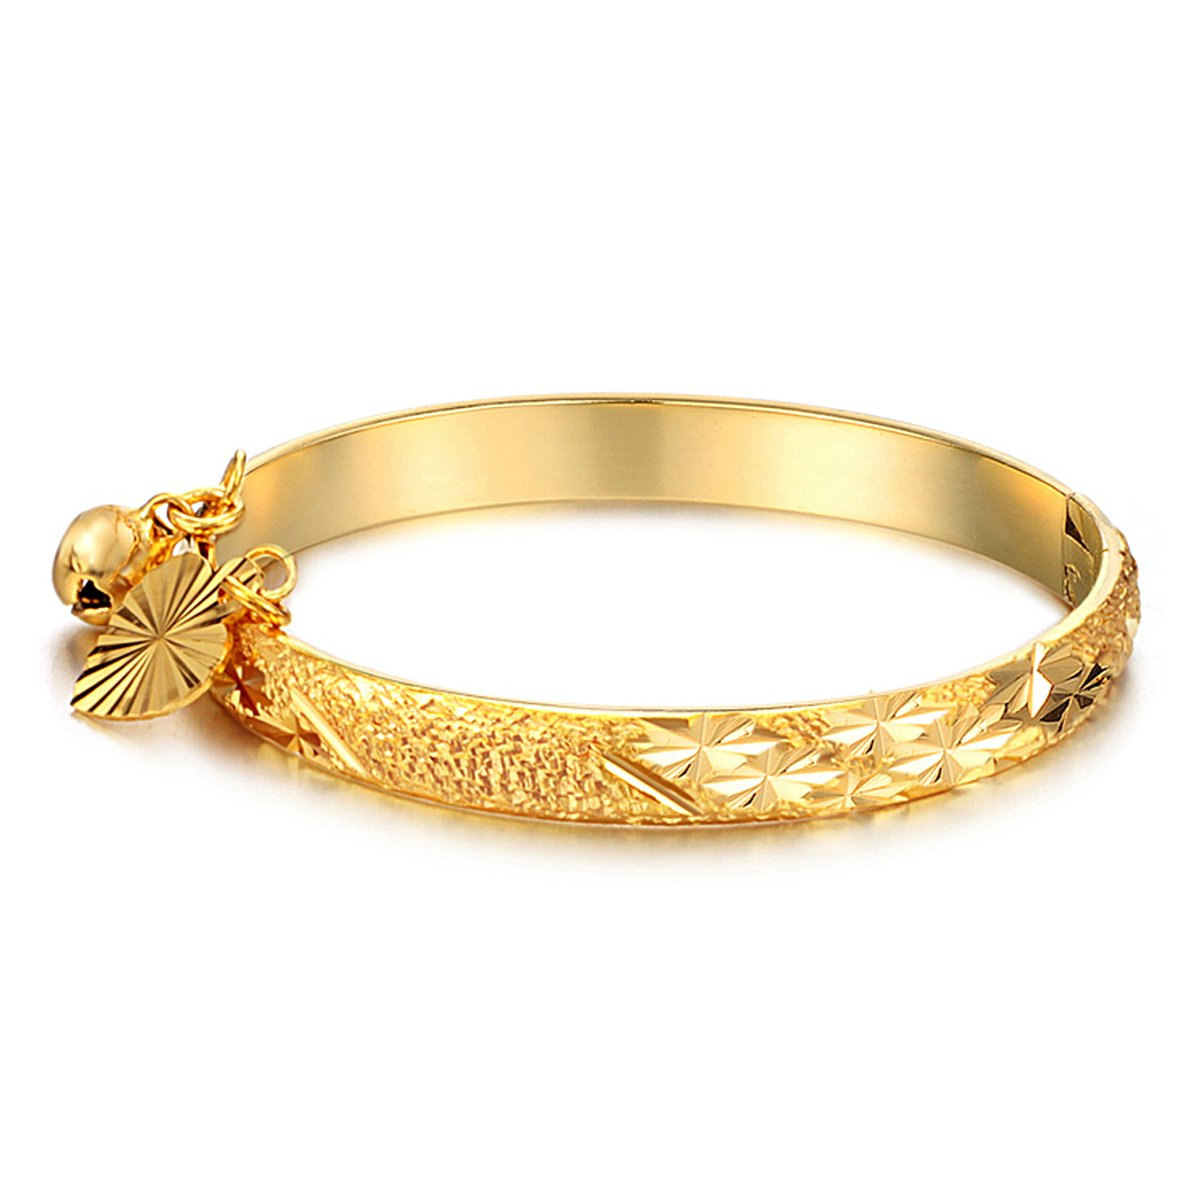 FCZDQ 18K Gold Plated New Born Baby Bangle Bracelet Lucky Bell Heart Leaf Cuff Jewelry Infant